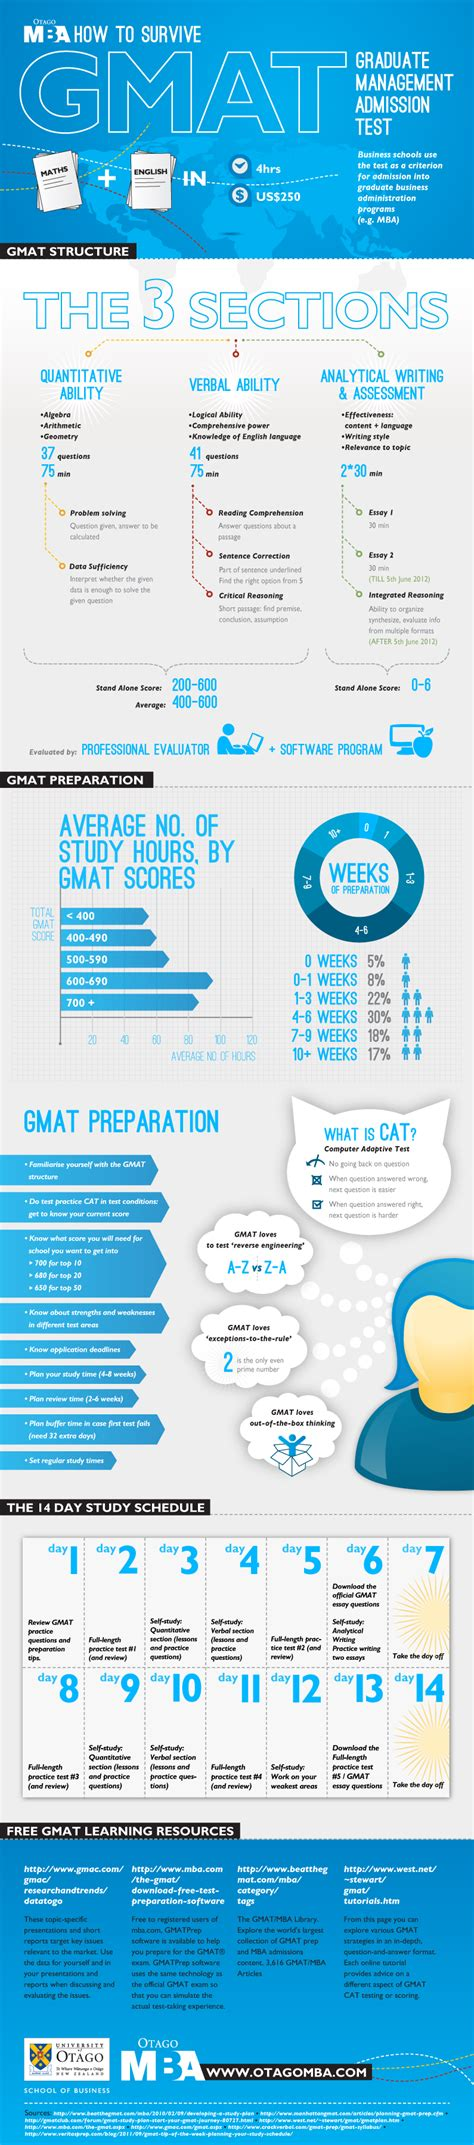 9 Gmat Preparation Tips For A Perfect Study Schedule. Accredited Online Business Degrees. Mcafee Vulnerability Scanner Irvington N J. Online Training Software Reviews. Secure Tech Consultancy Cheap Domain In India. 2006 Honda Civic Lx Mpg Outbound Email Service. Best Hybrids For The Money Citibank Roth Ira. Cheap Car Insurance Liability Only. Business Management Schools Online